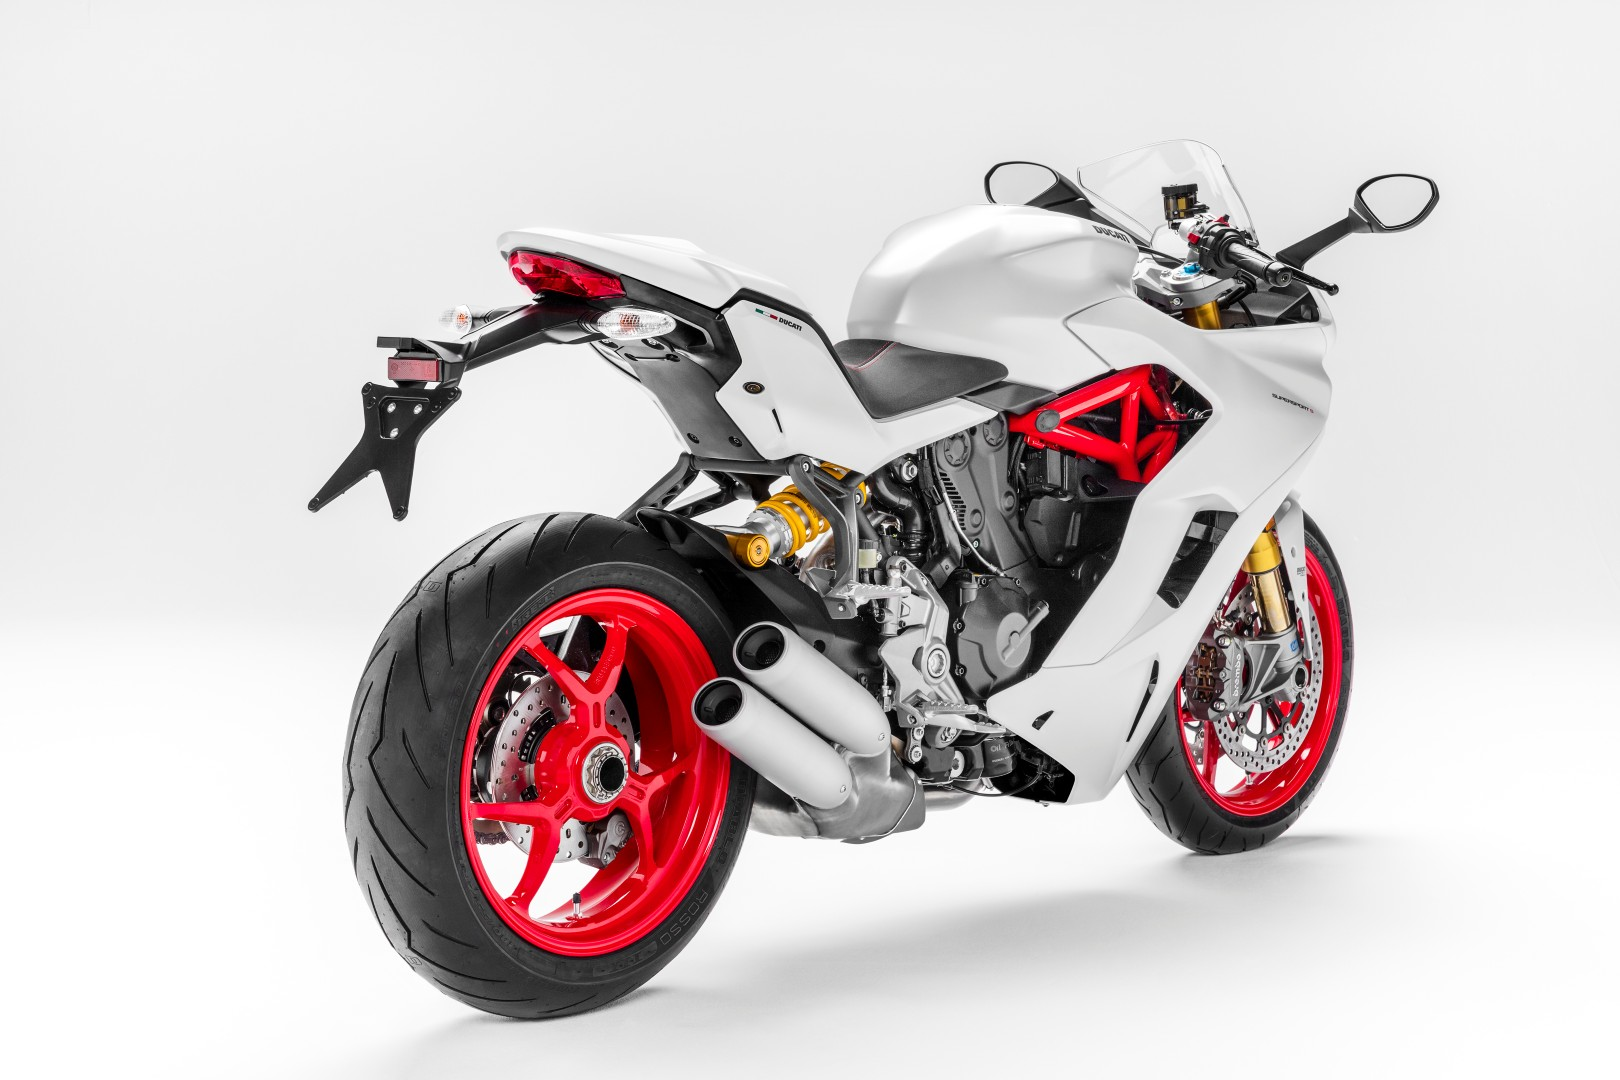 Ducati 939 Supersport/S 2017